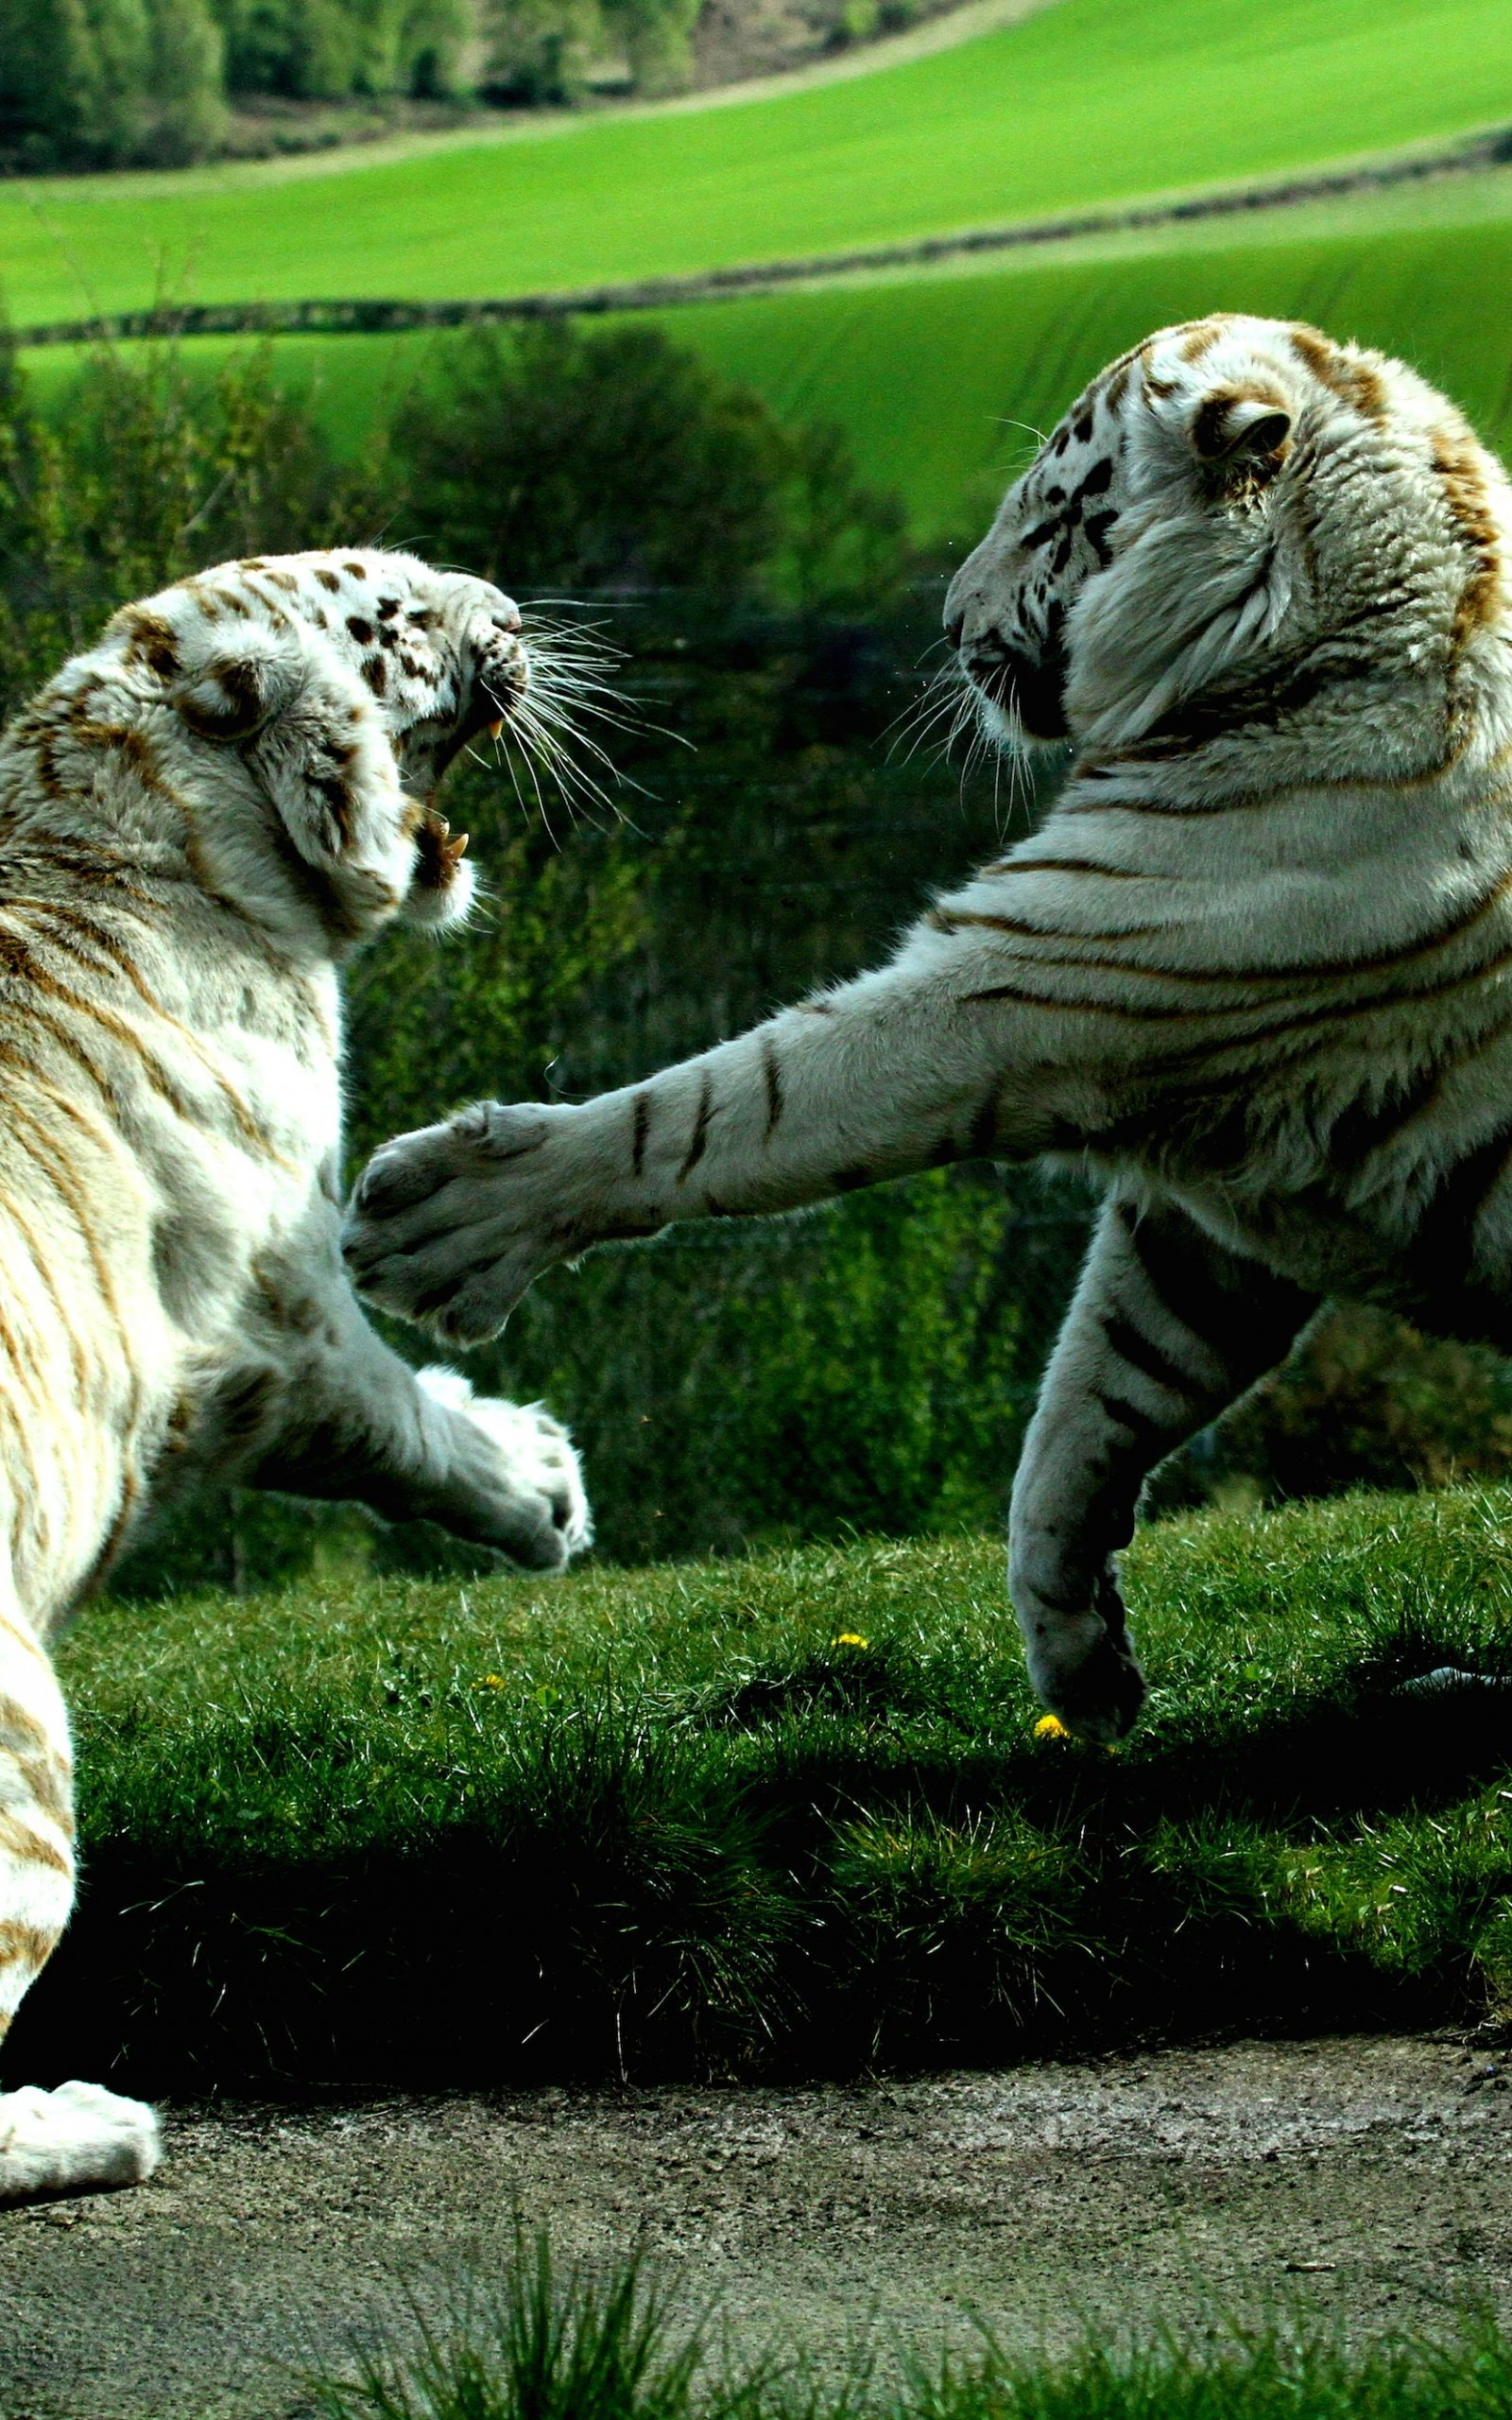 White Tigers Fighting Wallpaper for Amazon Kindle Fire HDX 8.9